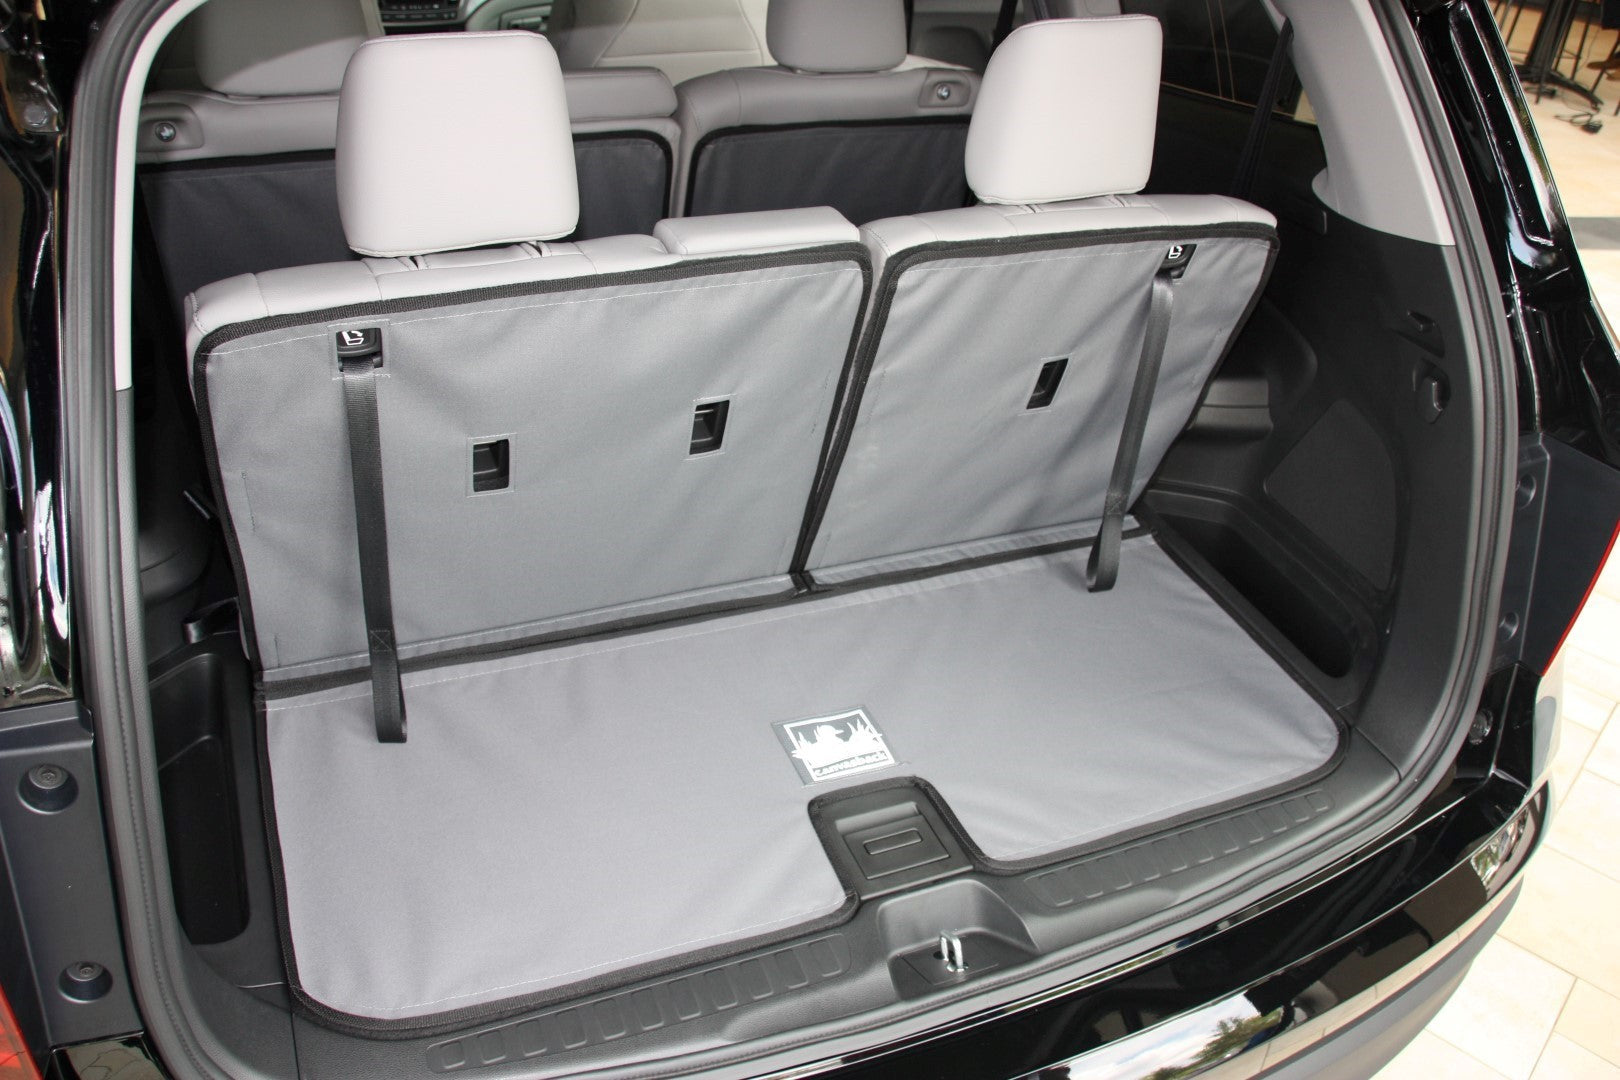 Honda Pilot Canvasback Cargo Liner  2016-2019  FREE SHIPPING